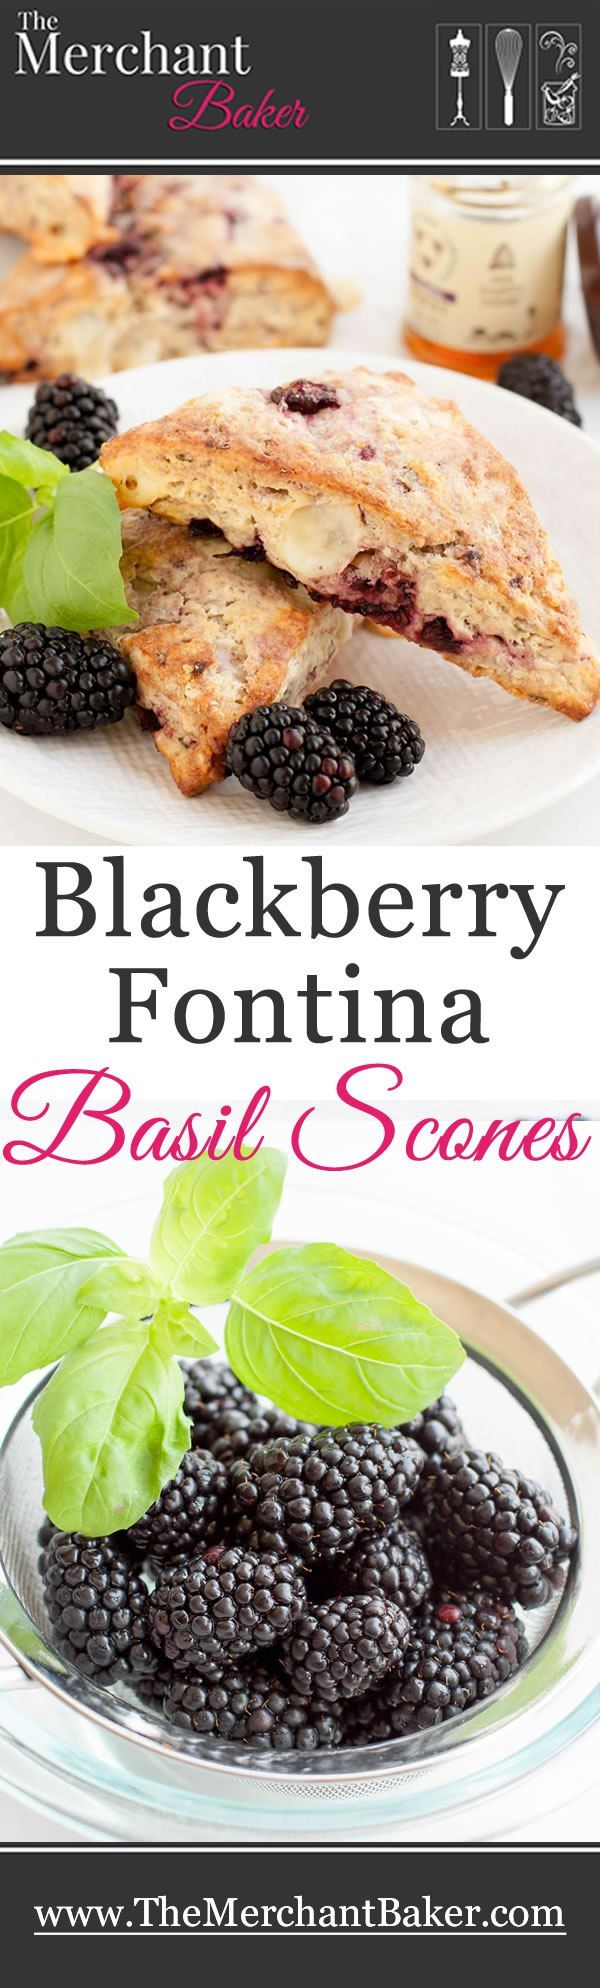 Blackberry Fontina Basil Scones. A sweet and savory scone, rich with creamy fontina, fresh blackberries and minty basil. Serve with a drizzle of honey. Eat them hot while the cheese is all melty!